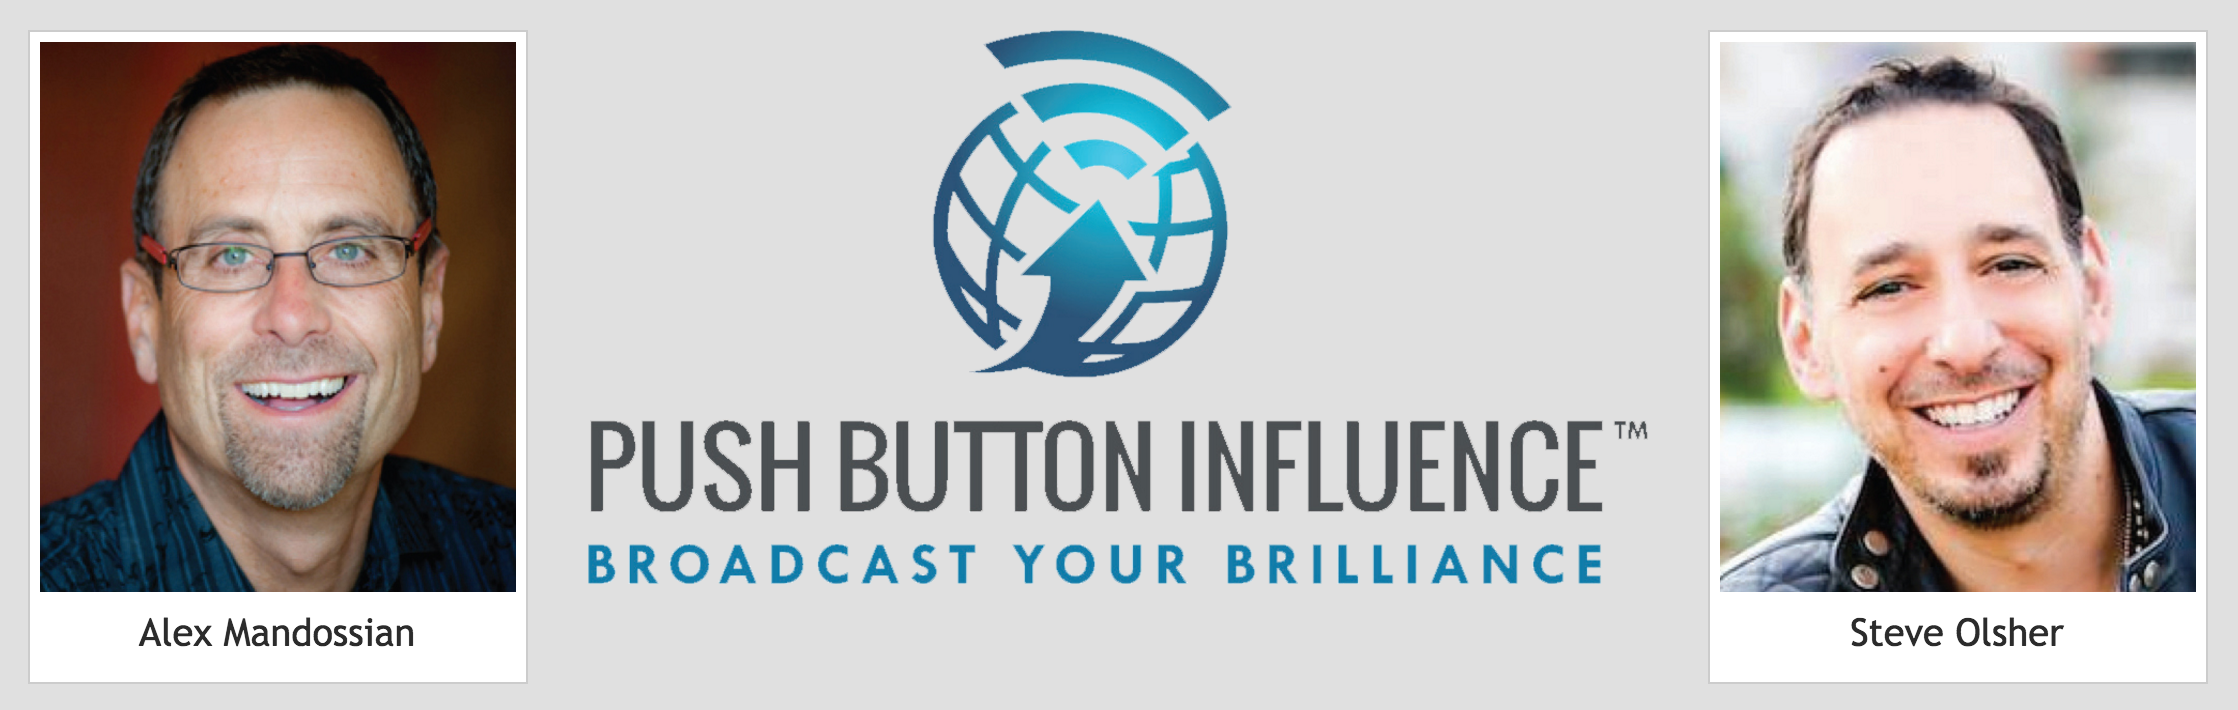 Review of Push Button Influence by Alex Mandossian and Steve Olsher